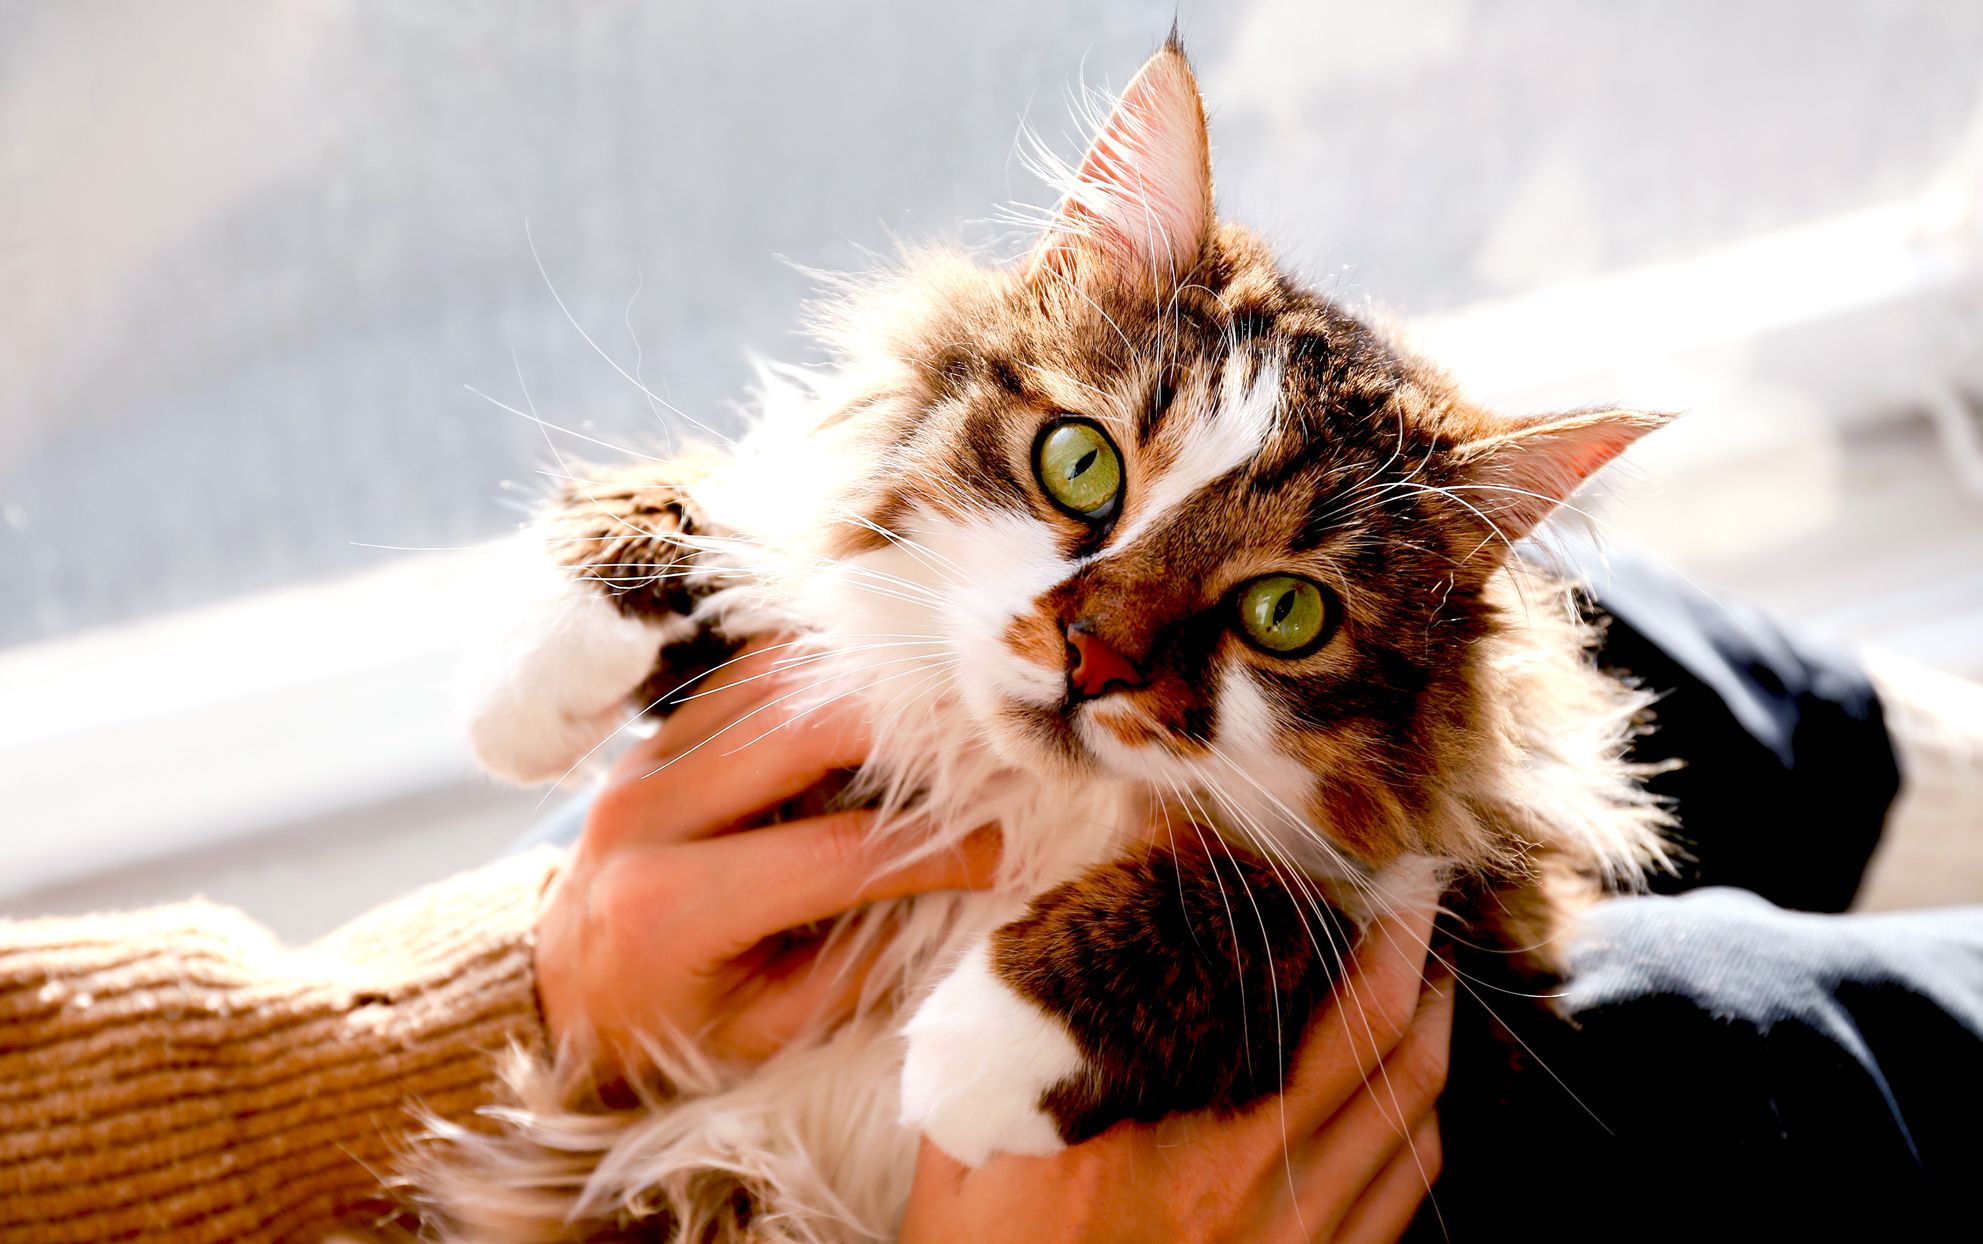 Long haired cat with green eyes being held by owner